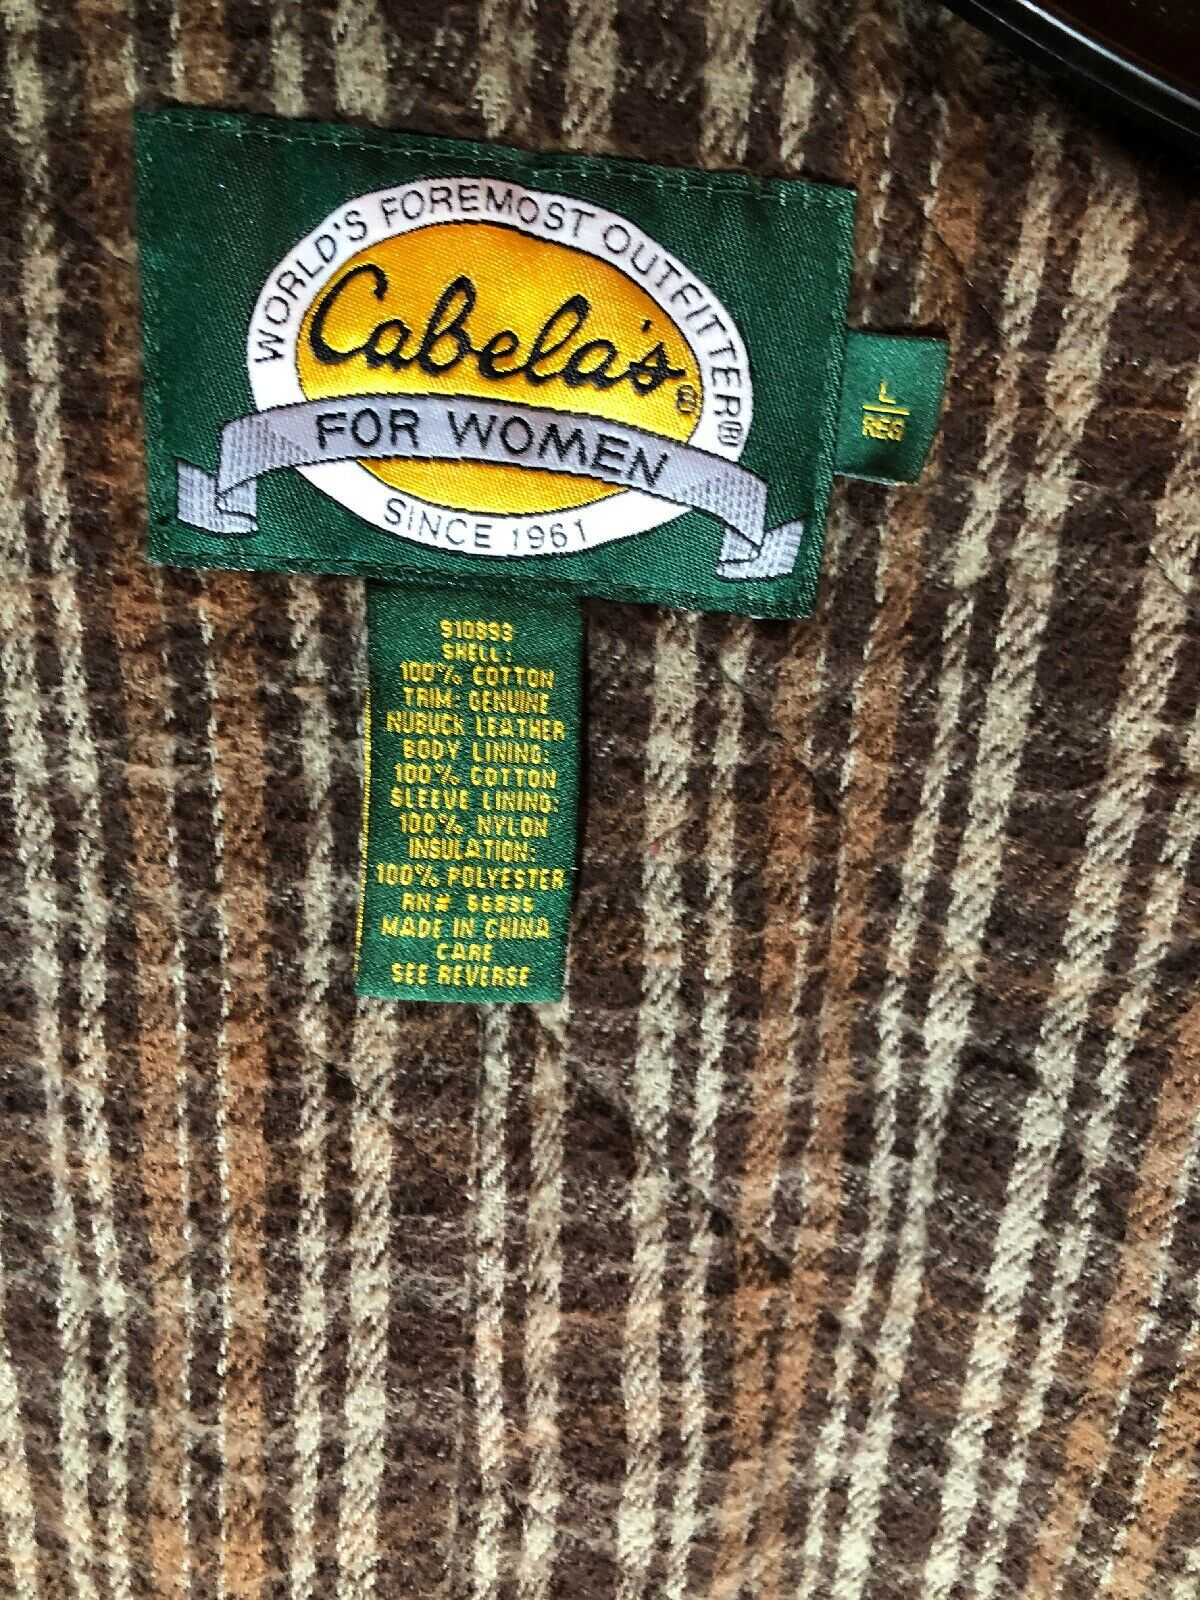 Cabela's Worlds Foremost Outfitter Zip Up Jacket … - image 12